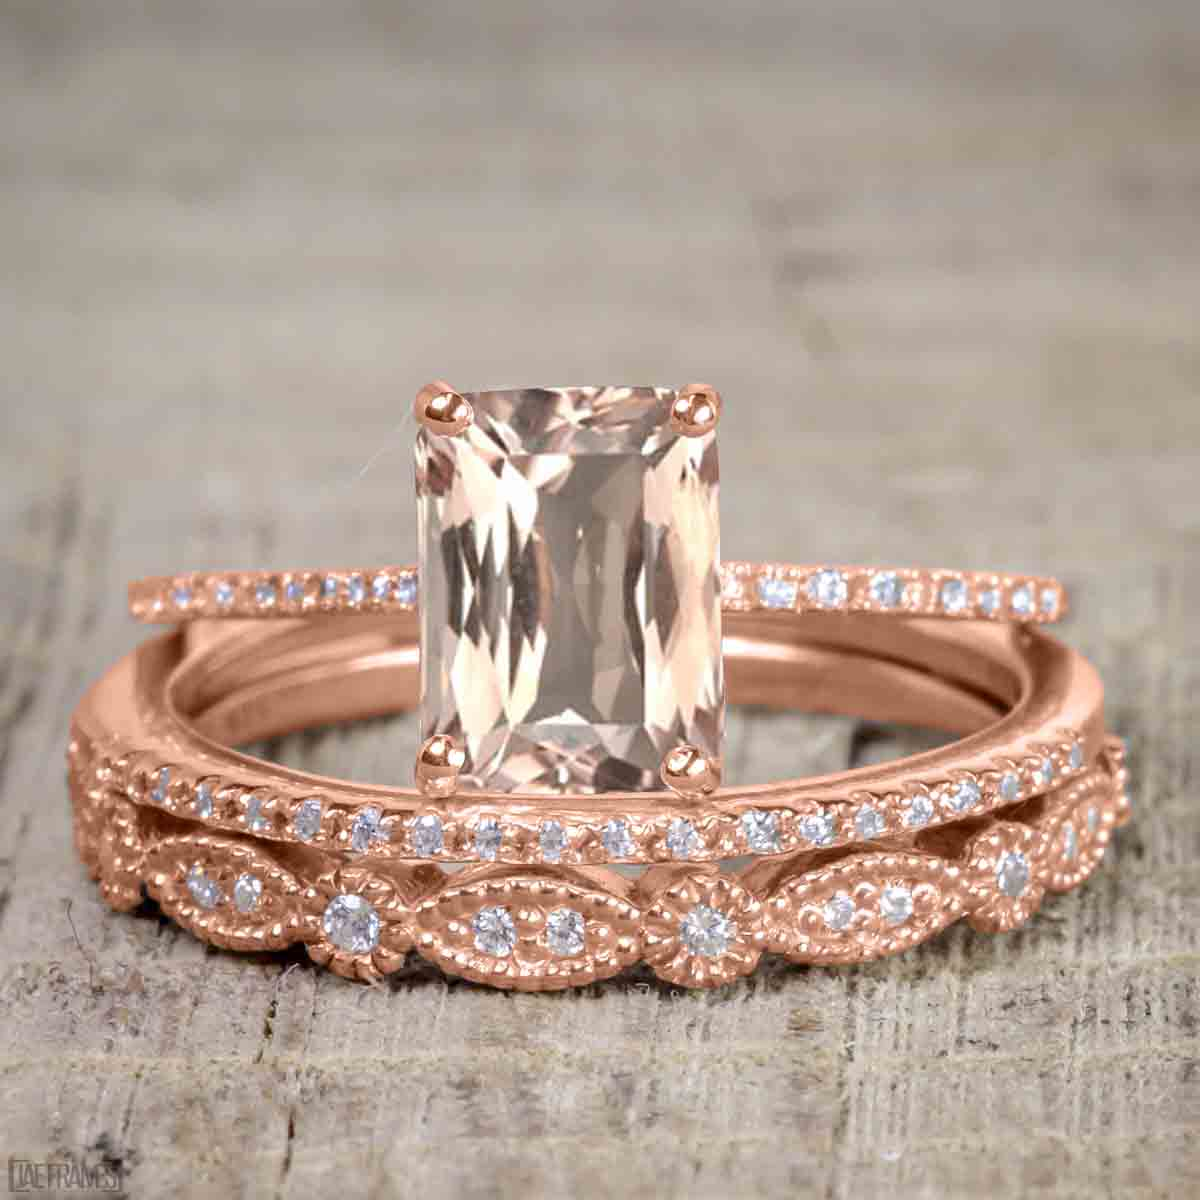 Artdeco 1.50 Carat Morganite cut Morganite and Diamond Trio Wedding Bridal Ring Set Rose Gold by JeenMata